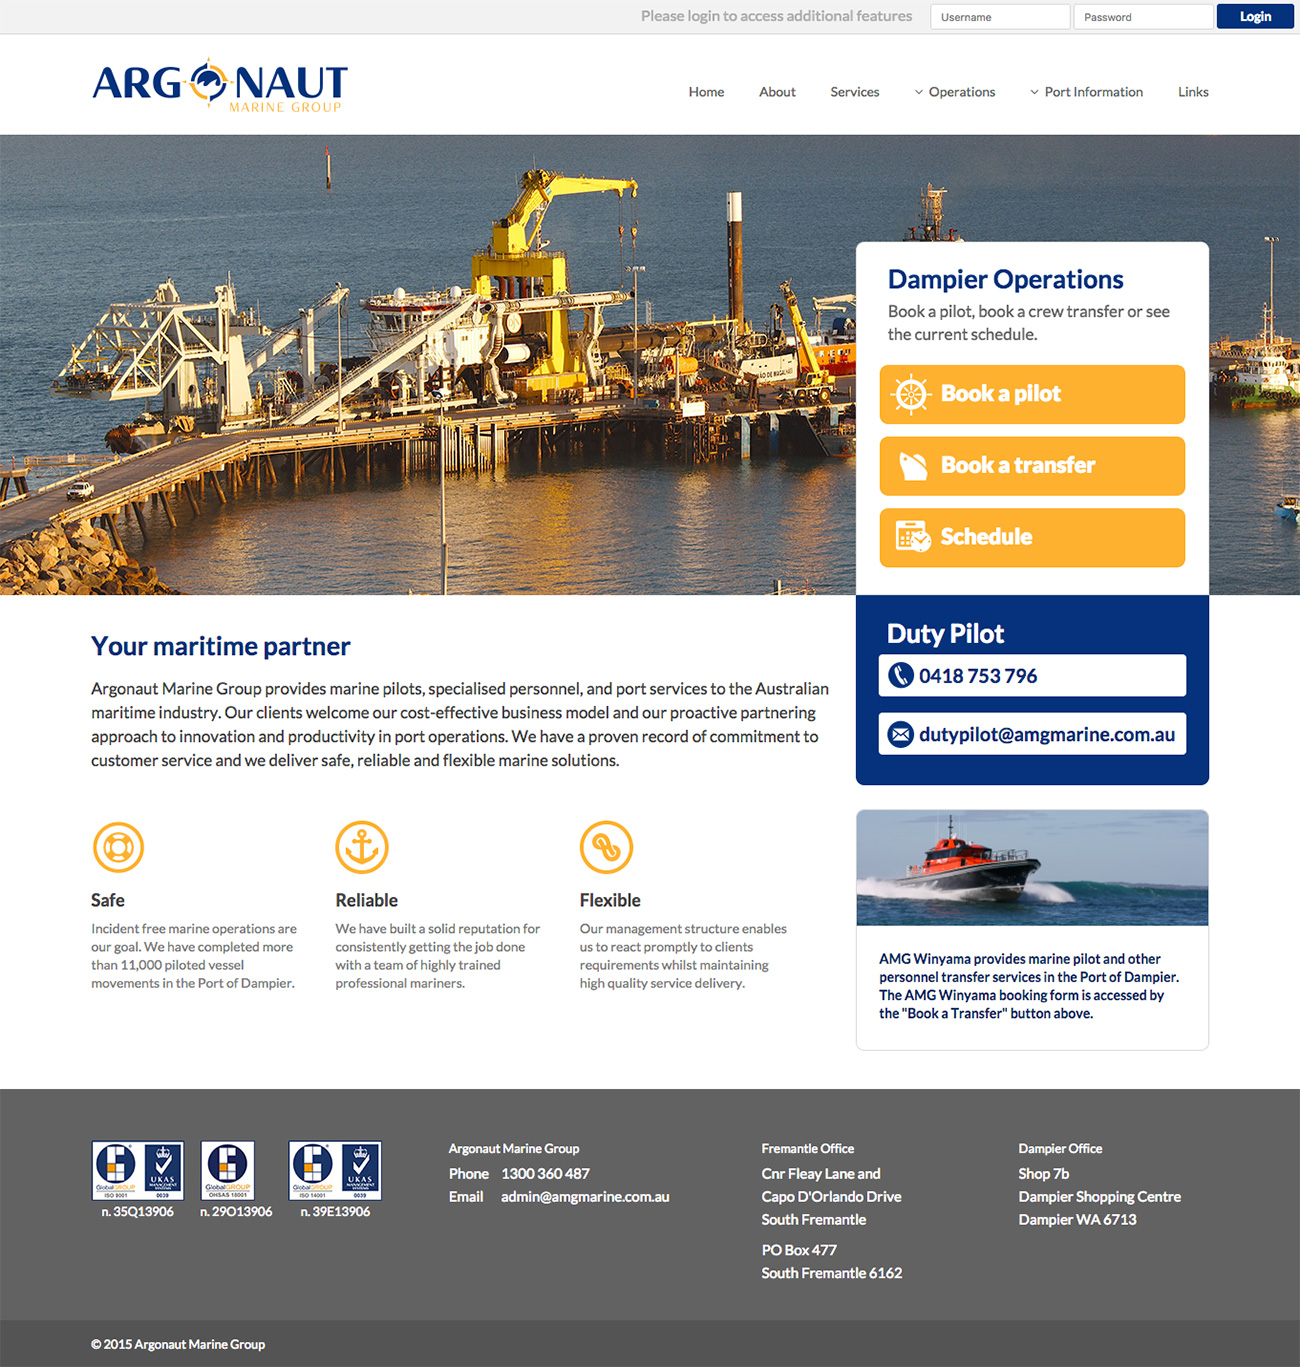 Screen grab of the Argonaut Marine Group website homepage